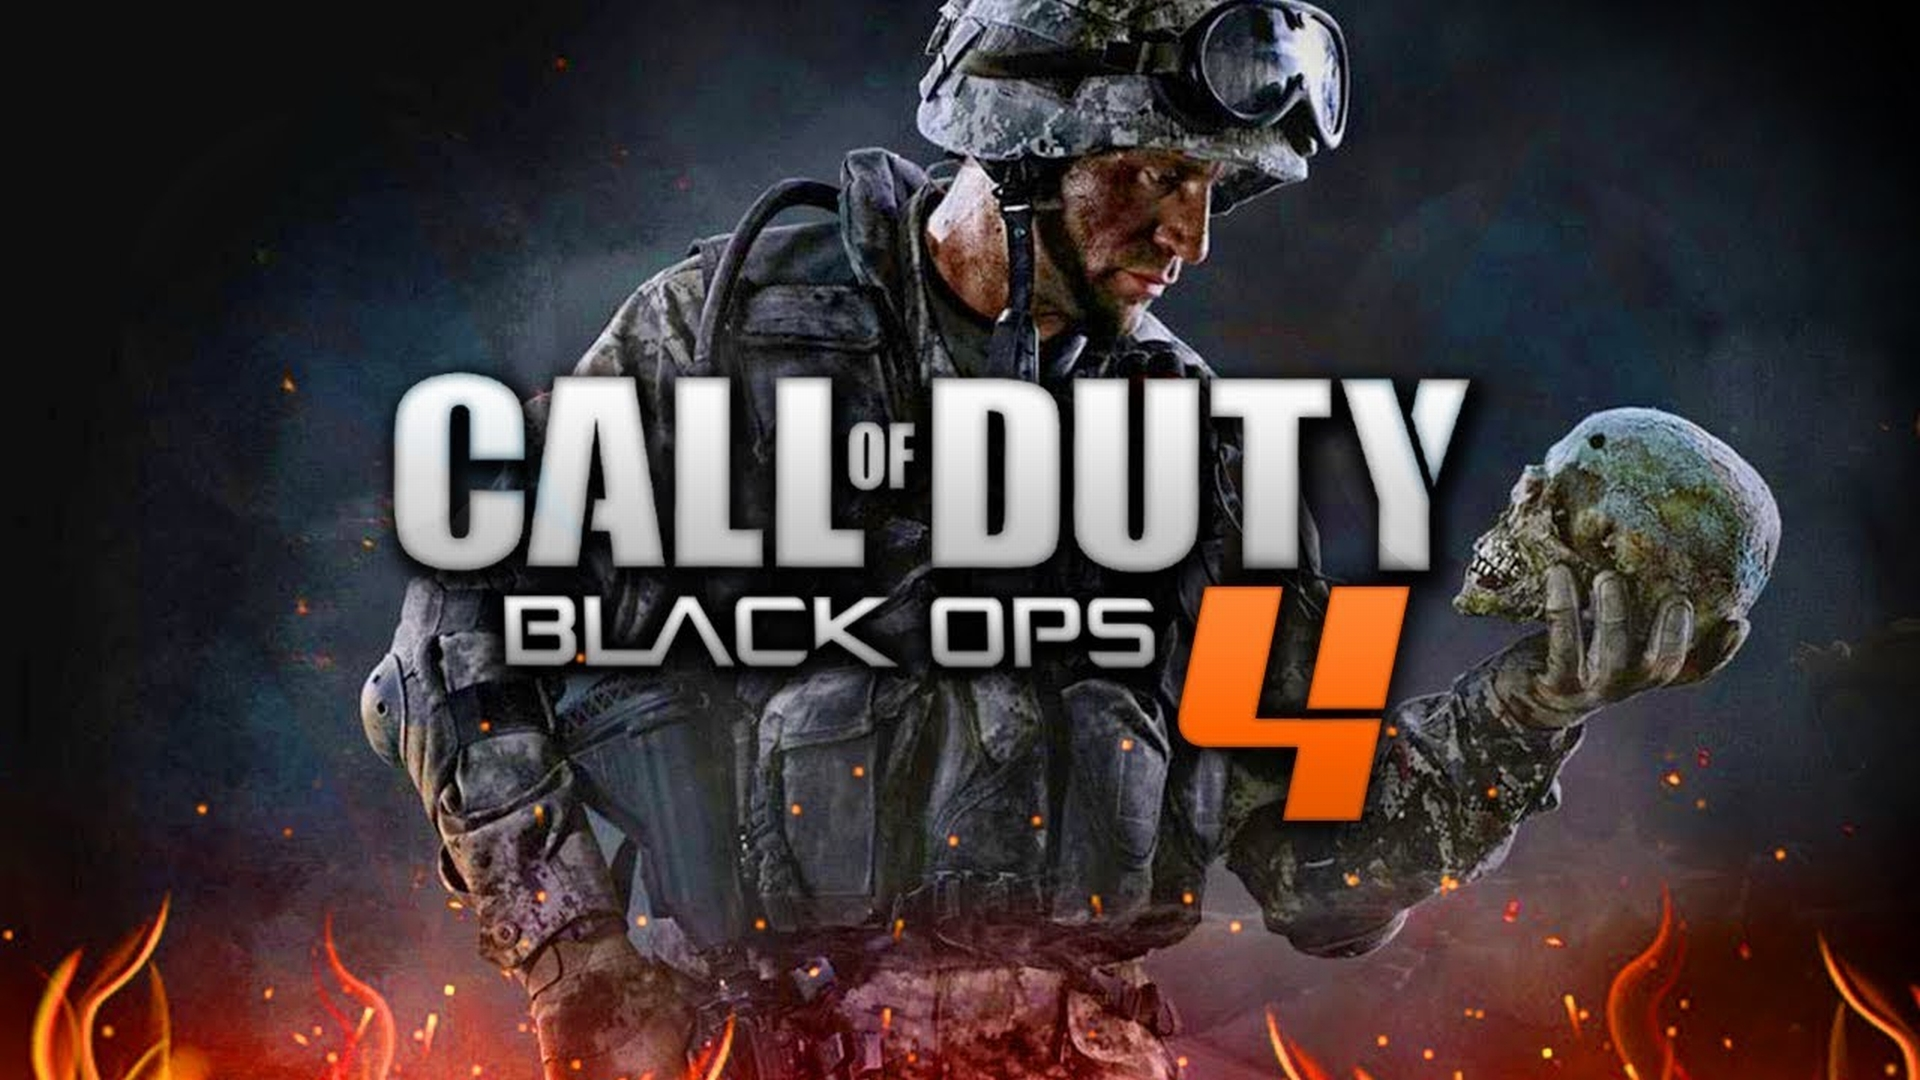 Call Of Duty Black Ops 4 Wallpapers: Call Of Duty (COD) Black Ops 4 Wallpapers